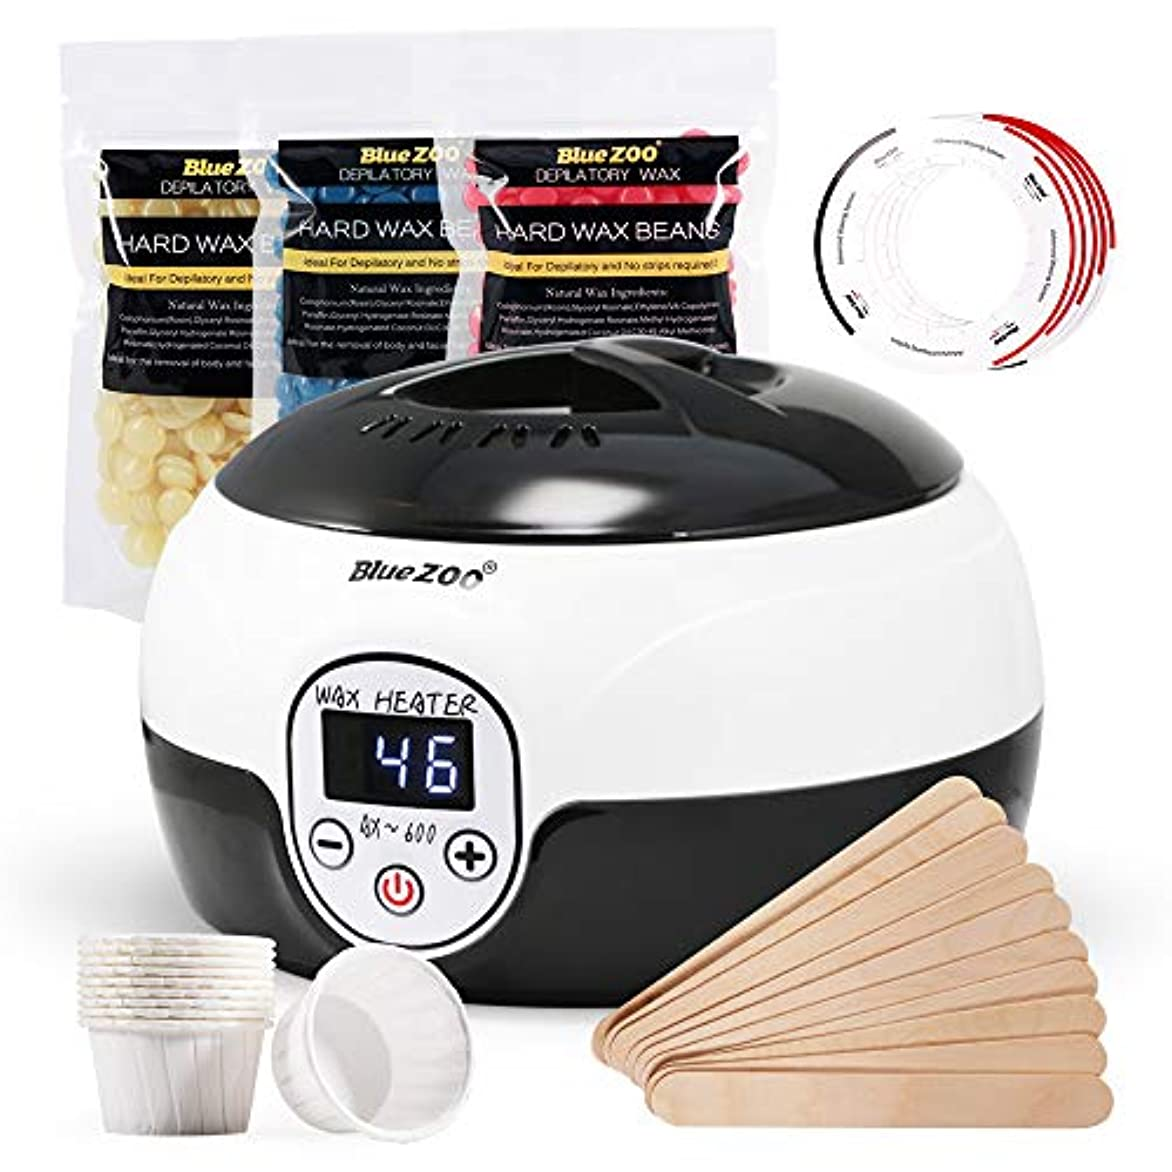 パリティ罪傘BlueZOO Home Waxing Kit Wax Warmer for Body Face Bikini Area Legs Hair Removal with 3 Packs of Hard Wax Beans and 10 Wax Applicator Sticks 141[並行輸入]